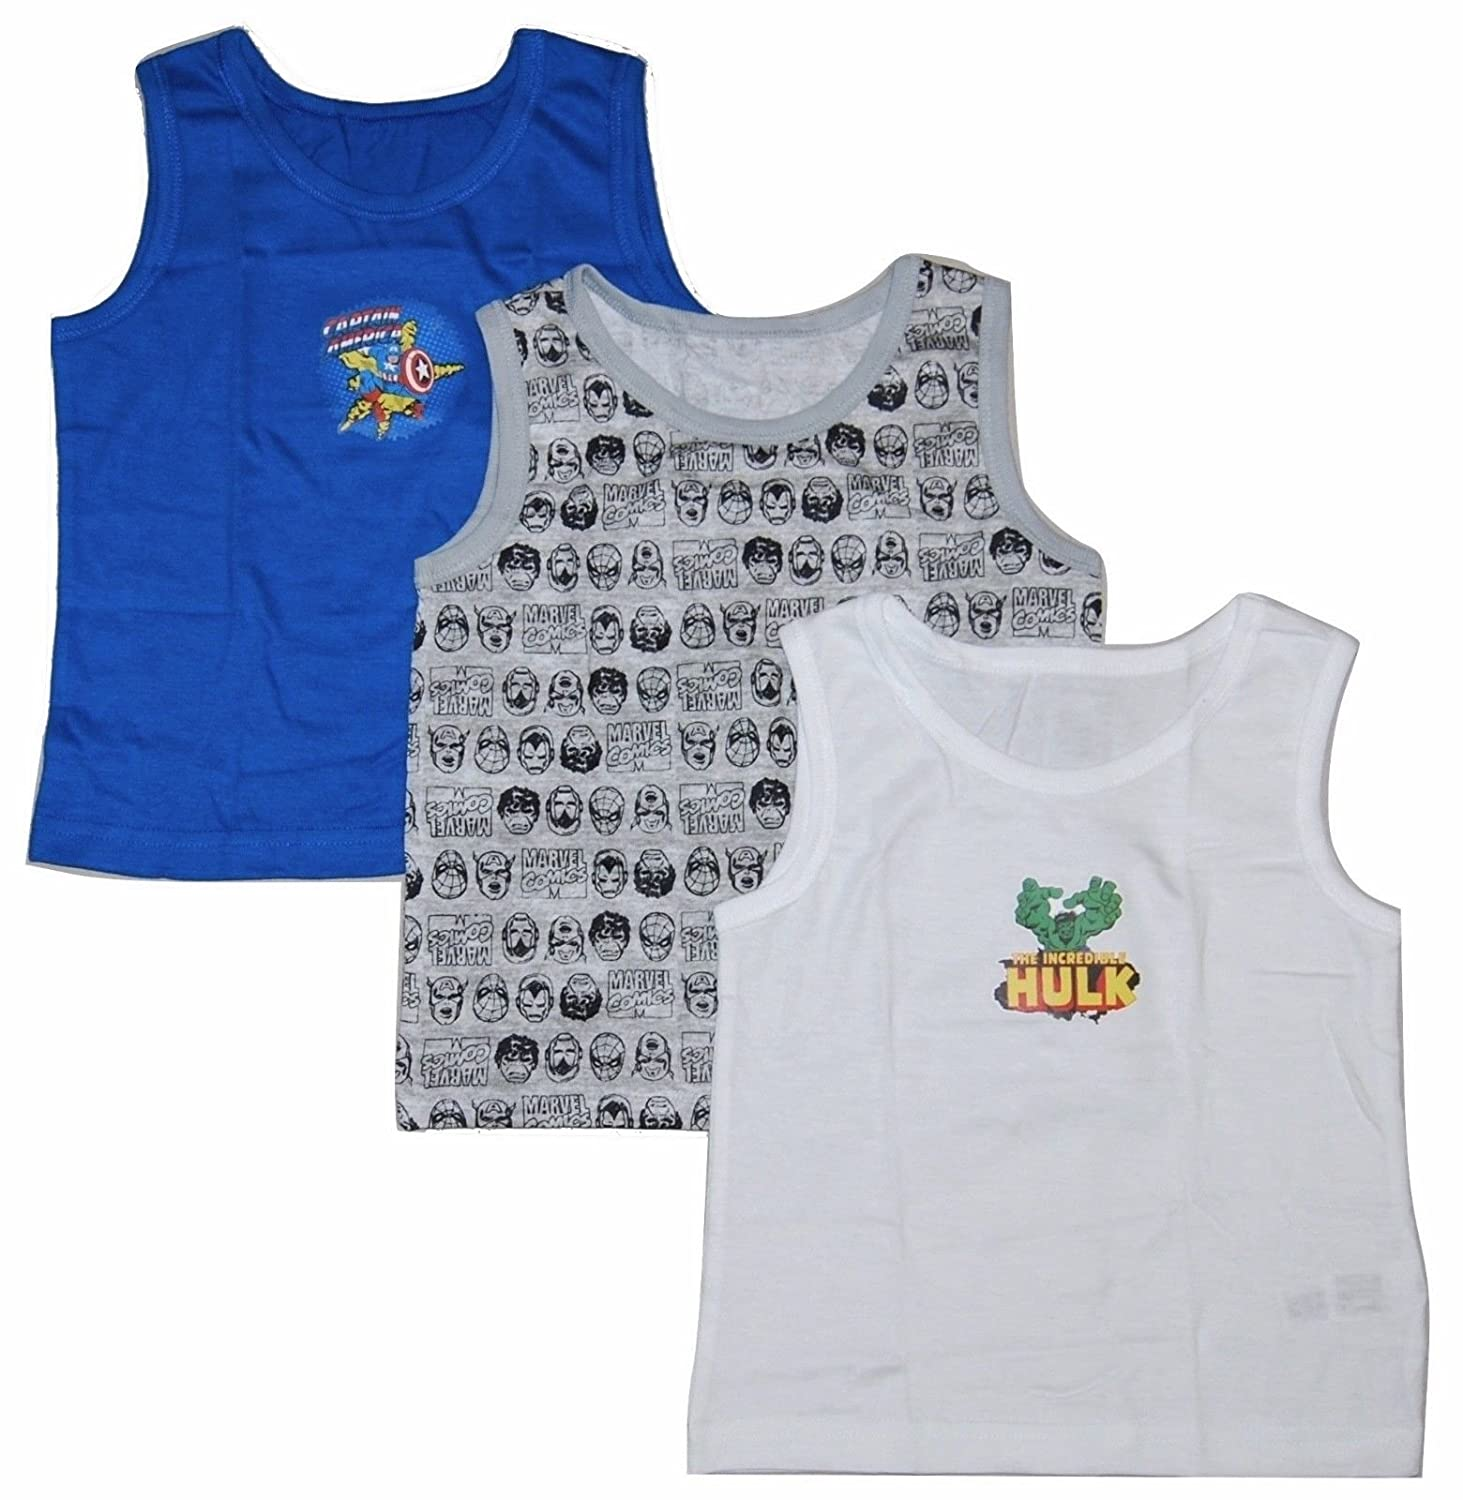 Boys 3 Pack Vest Tops Marvel Comics Hulk & Captain America